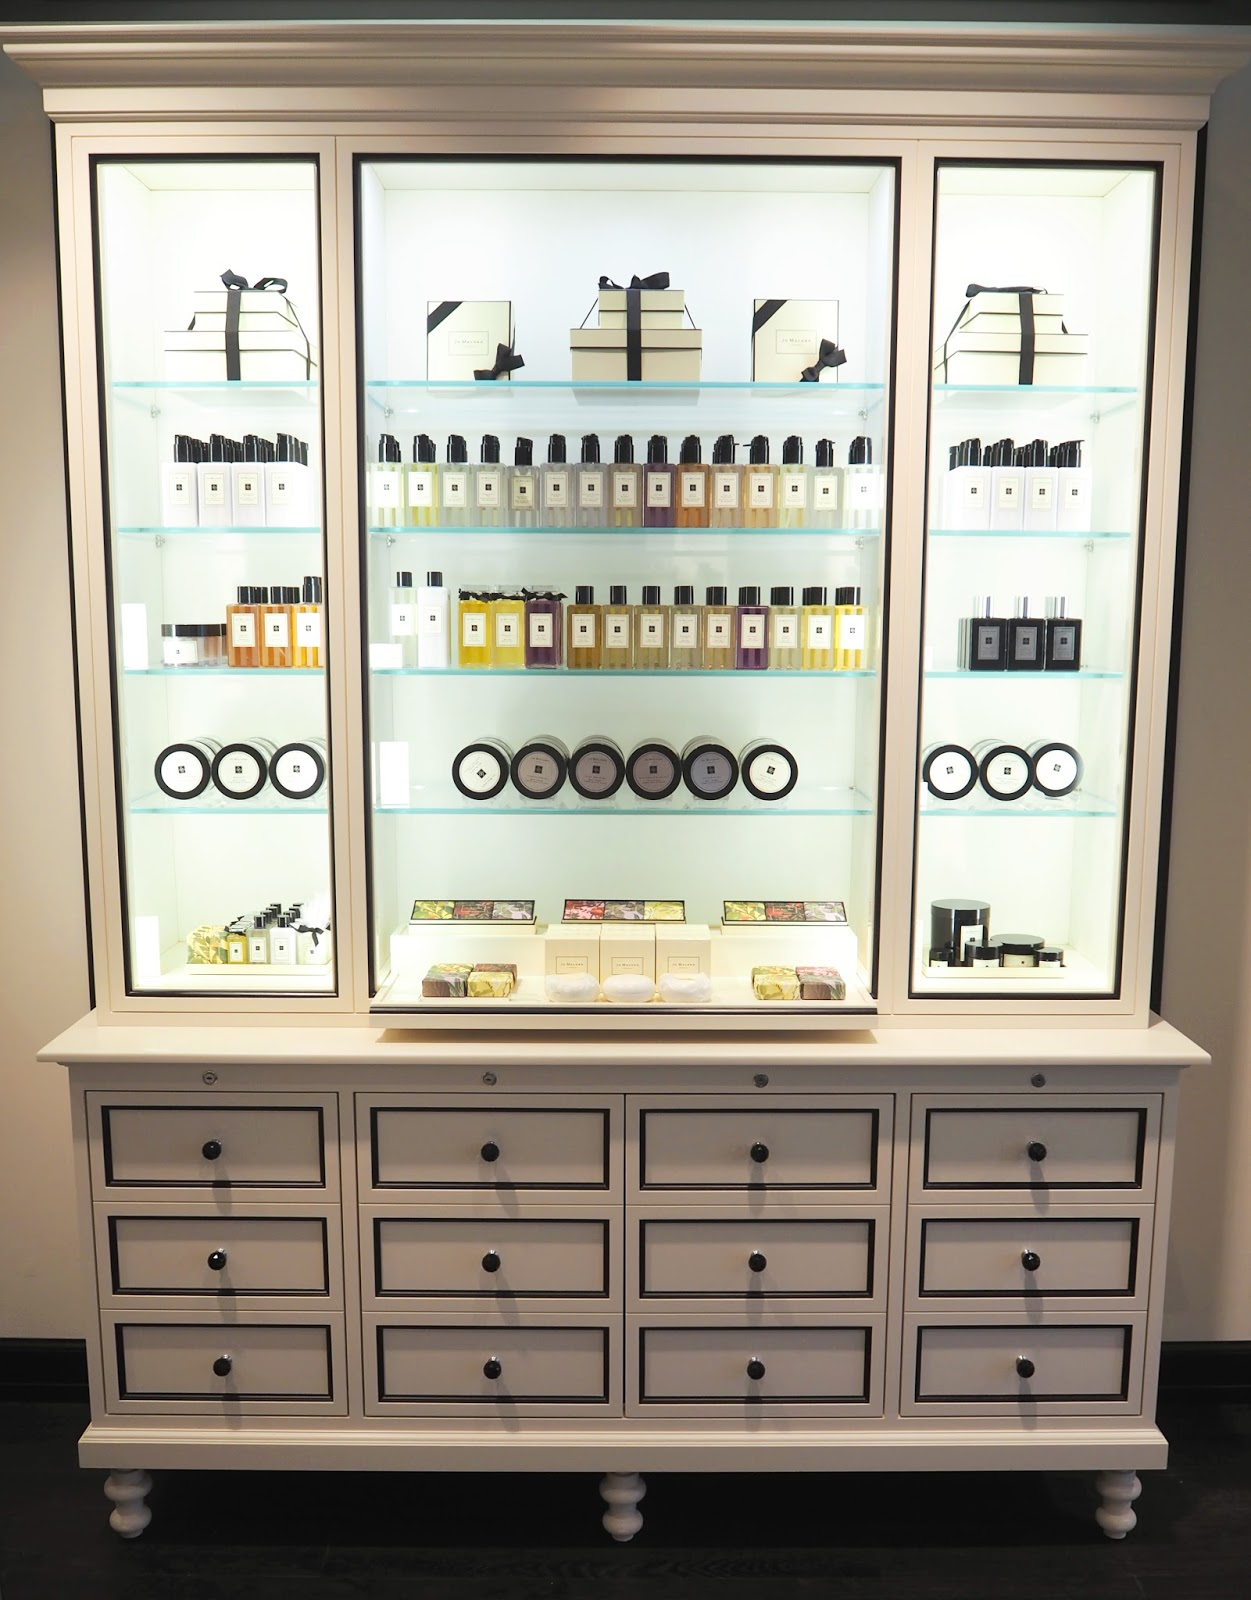 Jo Malone Bloomsbury Set Launch Event, Katie Kirk Loves, UK Blogger, Beauty Blogger, Jo Malone, The Bloomsbury Set, Fragrance Review, Beauty Review, UK Beauty Blogger,